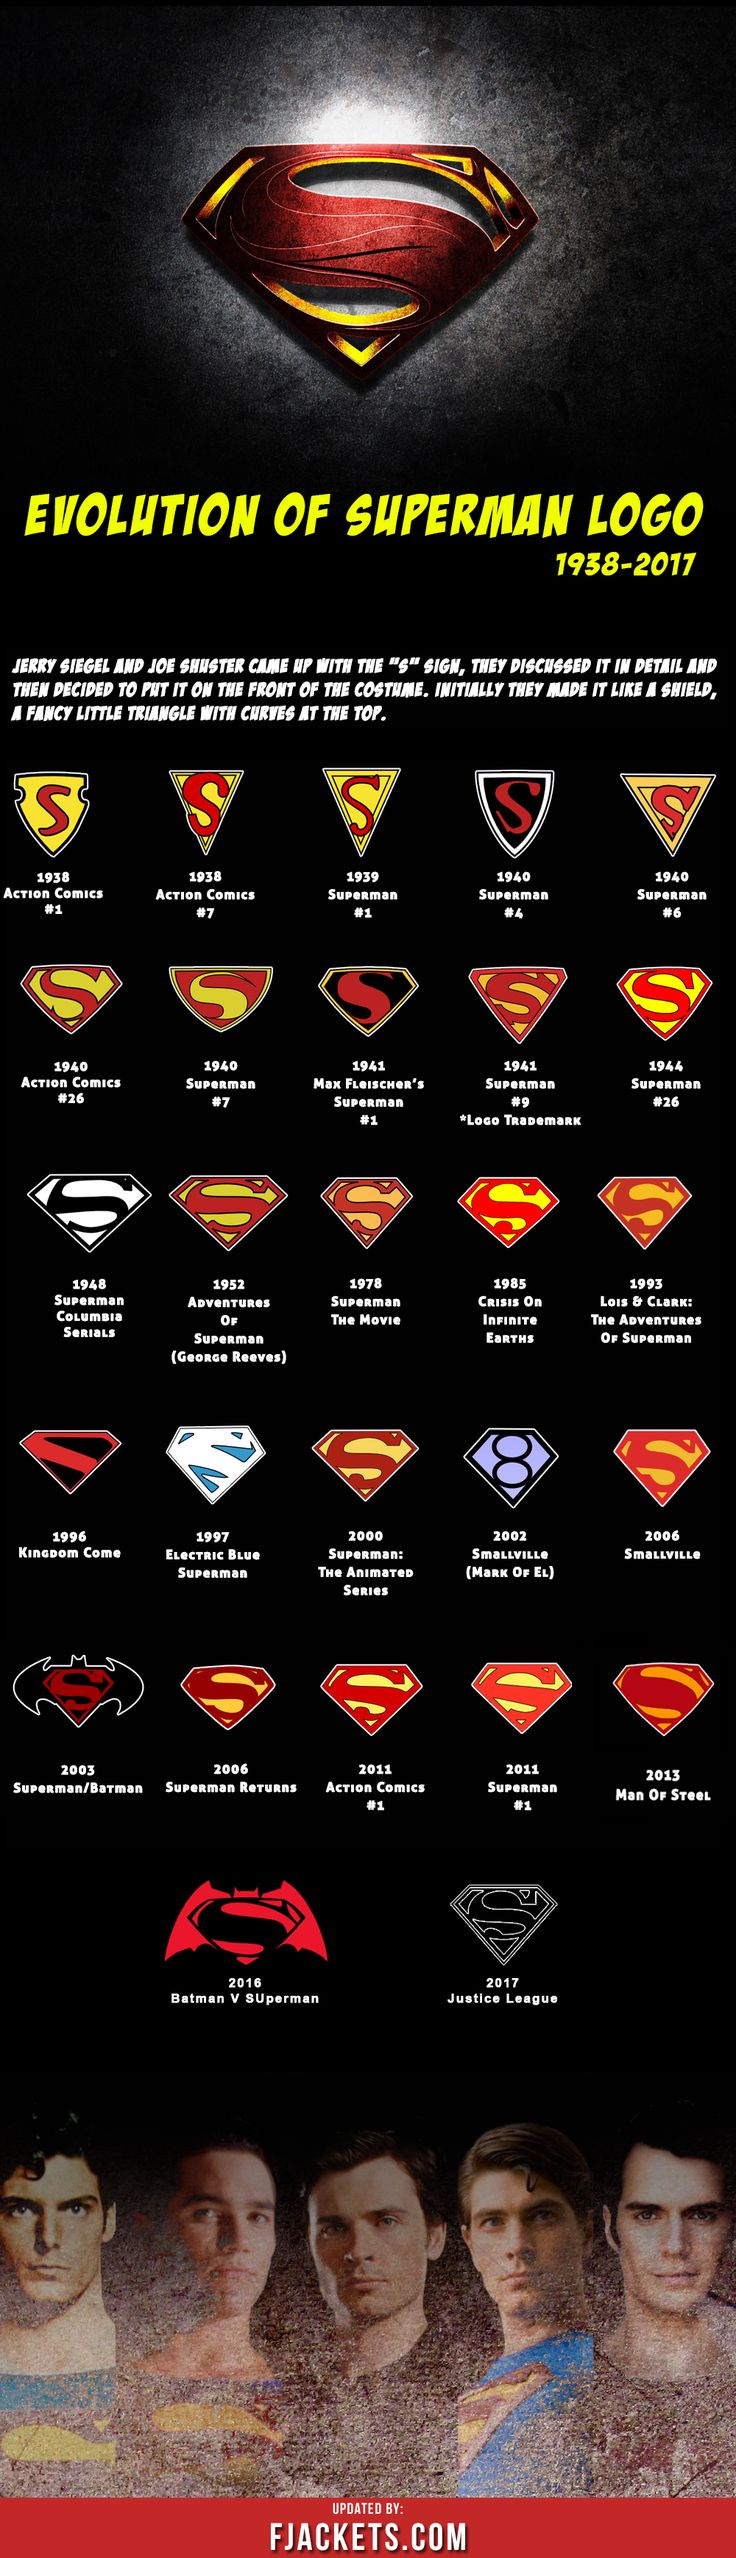 Infographic of Evolution of Superman Logo